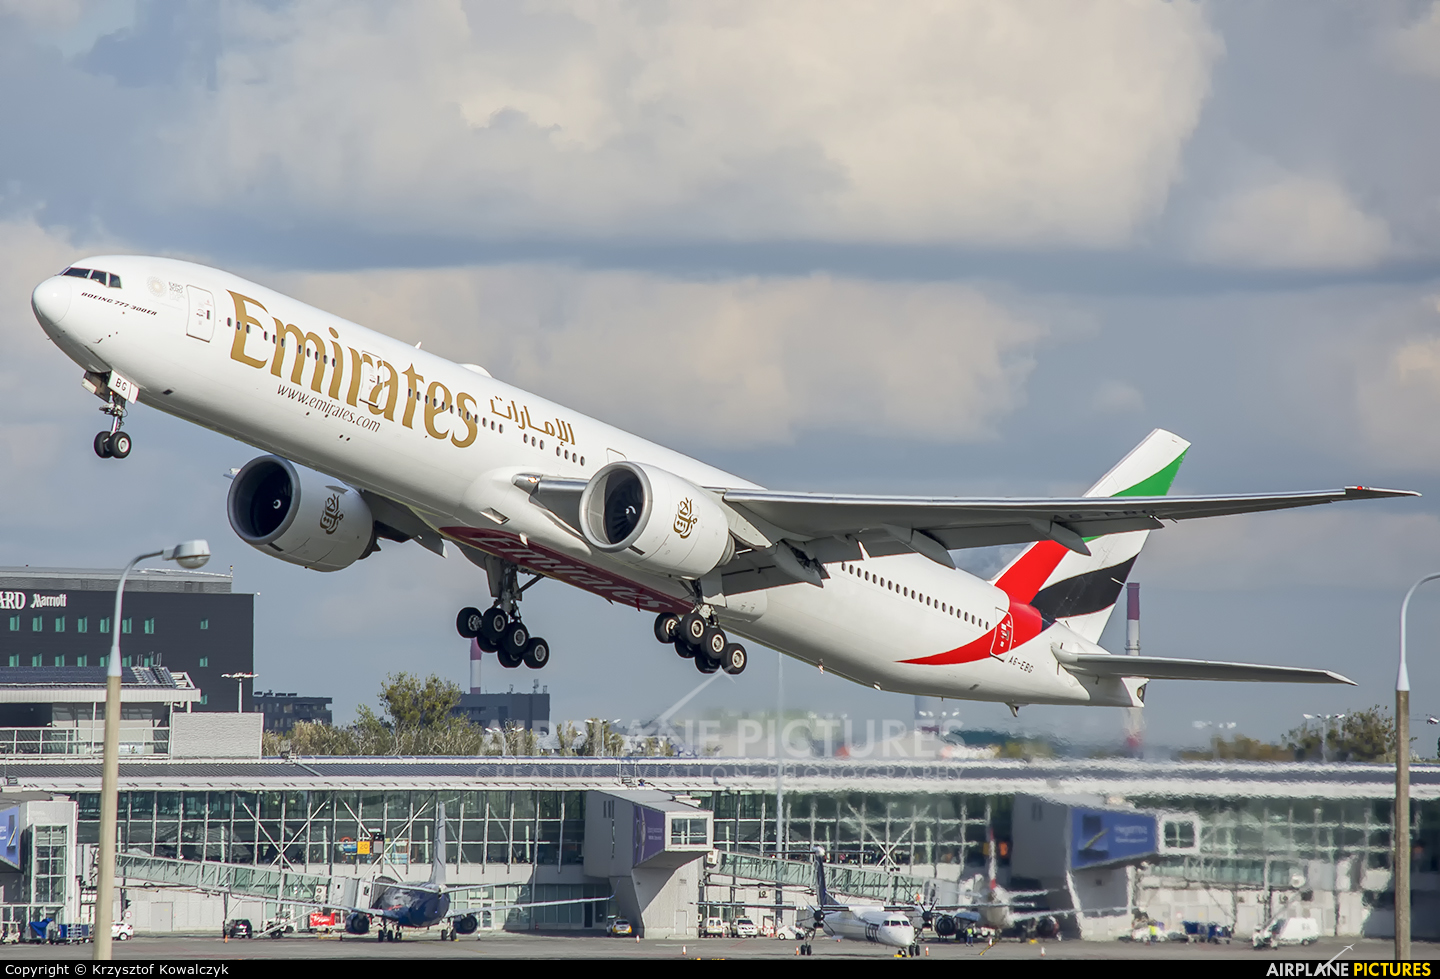 Emirates Airlines A6-EBG aircraft at Warsaw - Frederic Chopin